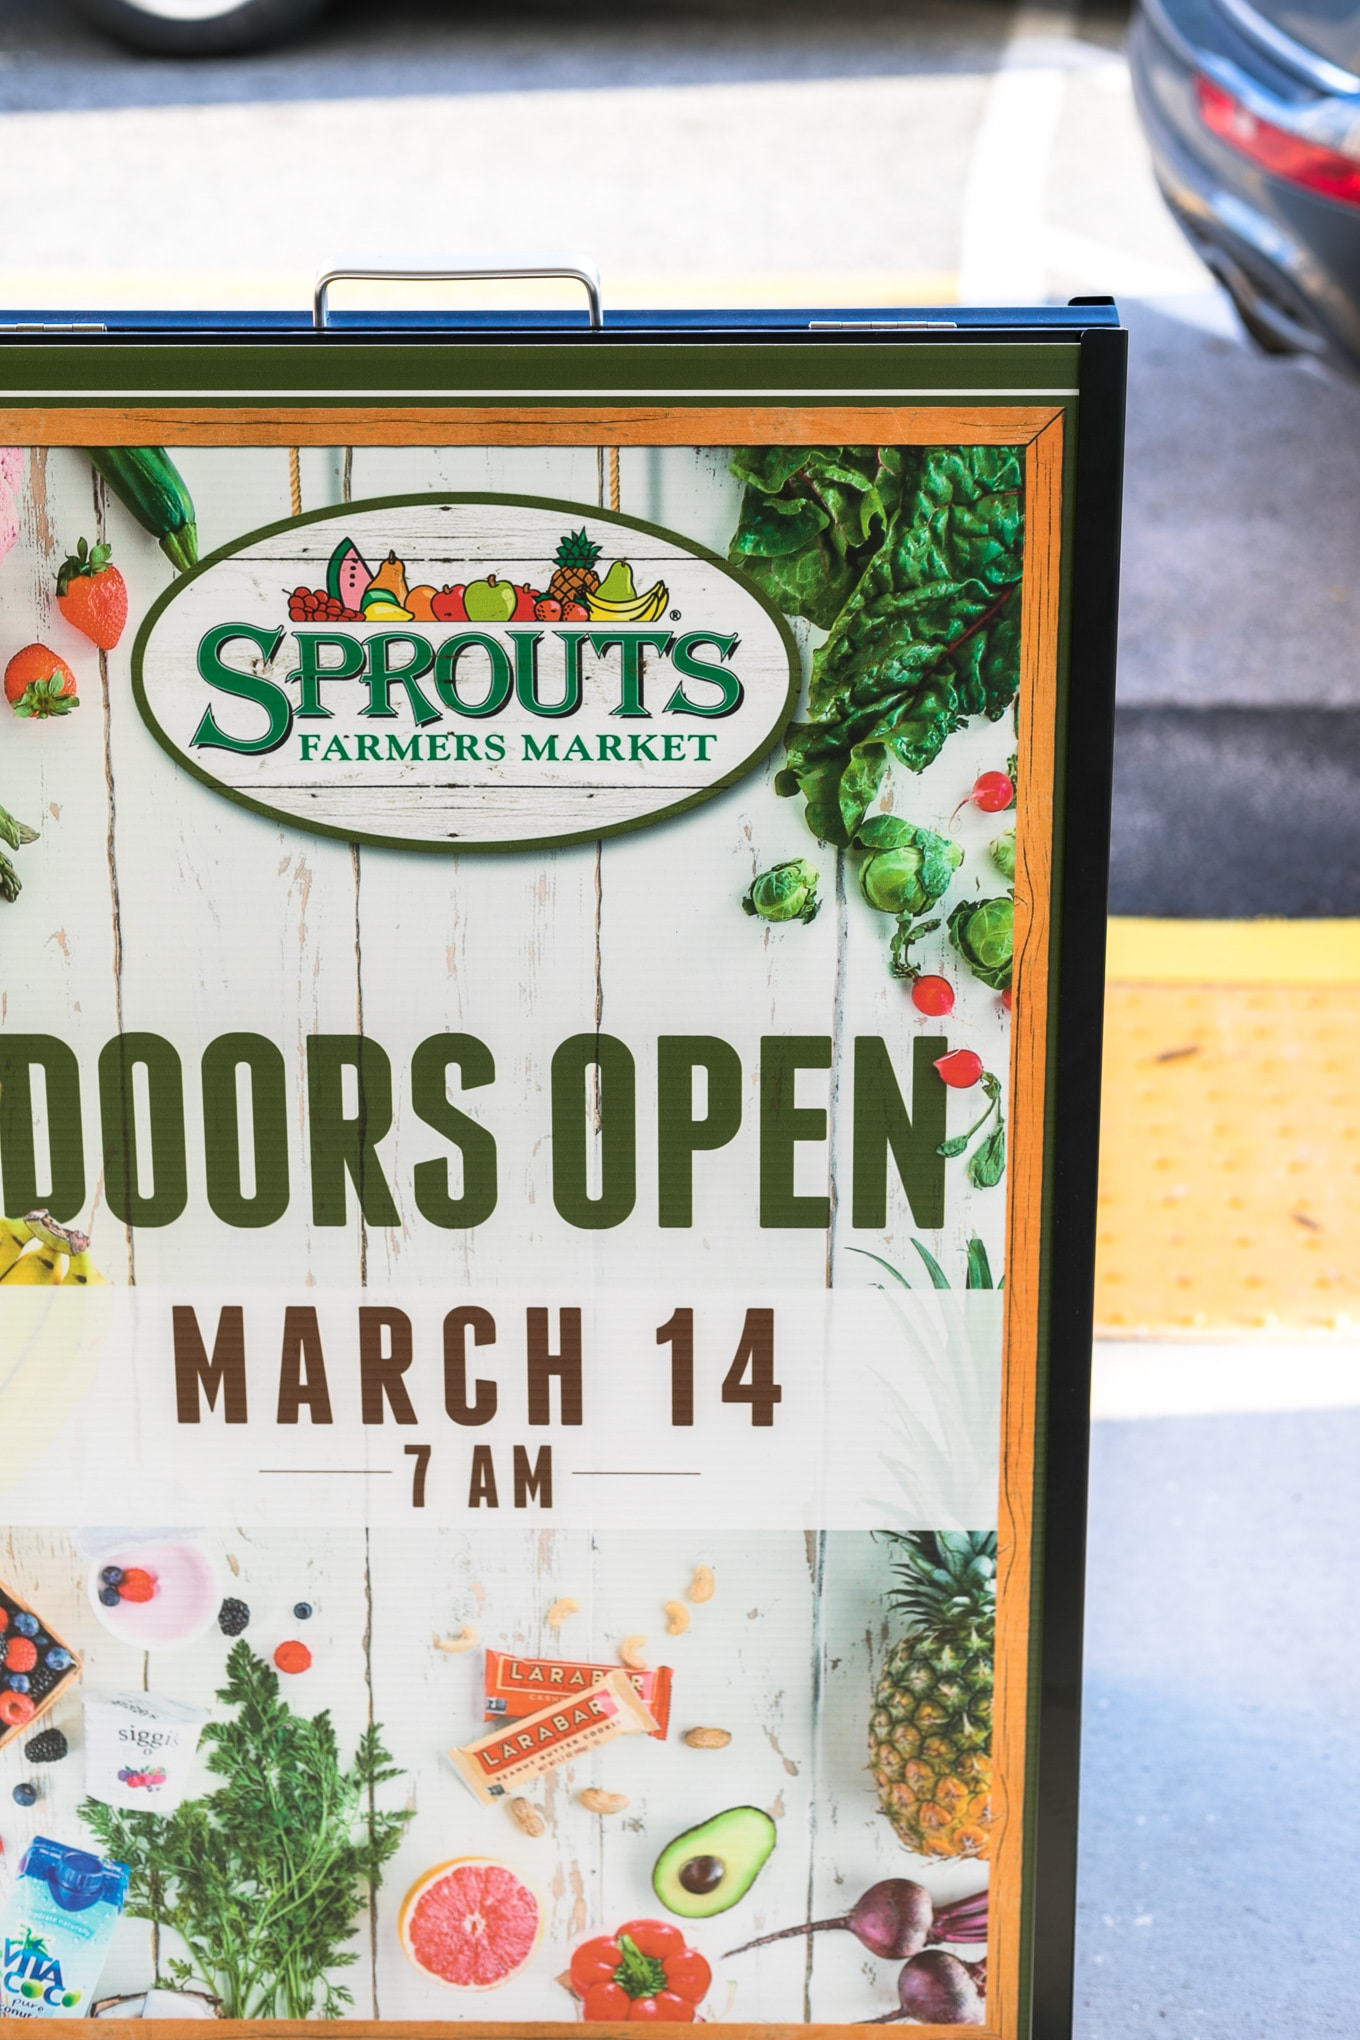 Photo of a sign at a Sprouts grocery store saying that doors open March 14th at 7am